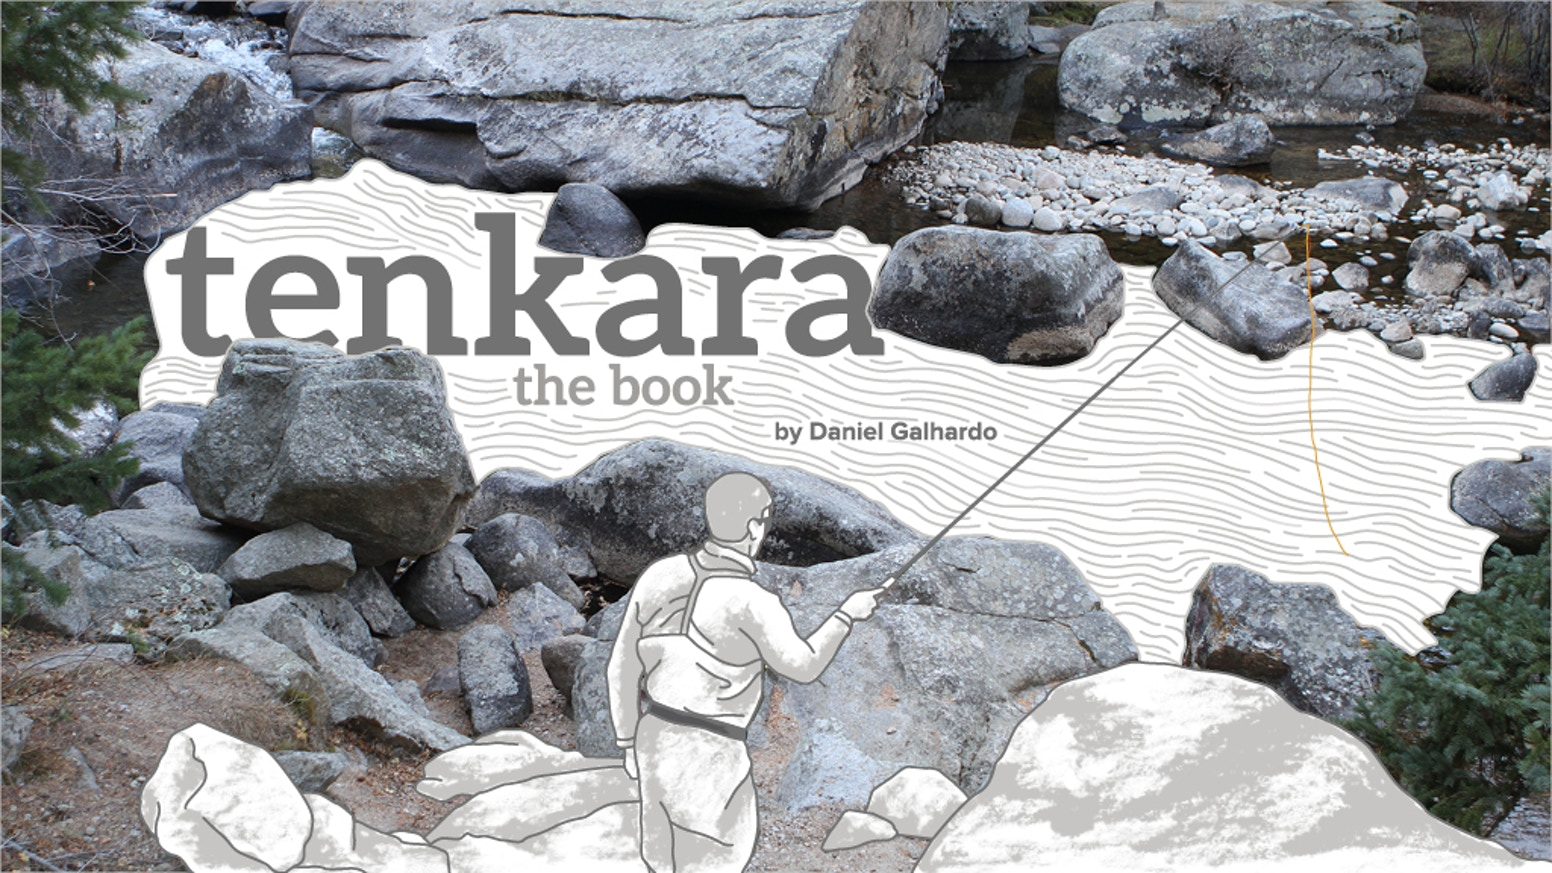 Tenkara is the simple fly-fishing method from Japan. This book is written by the person who introduced tenkara outside of Japan.